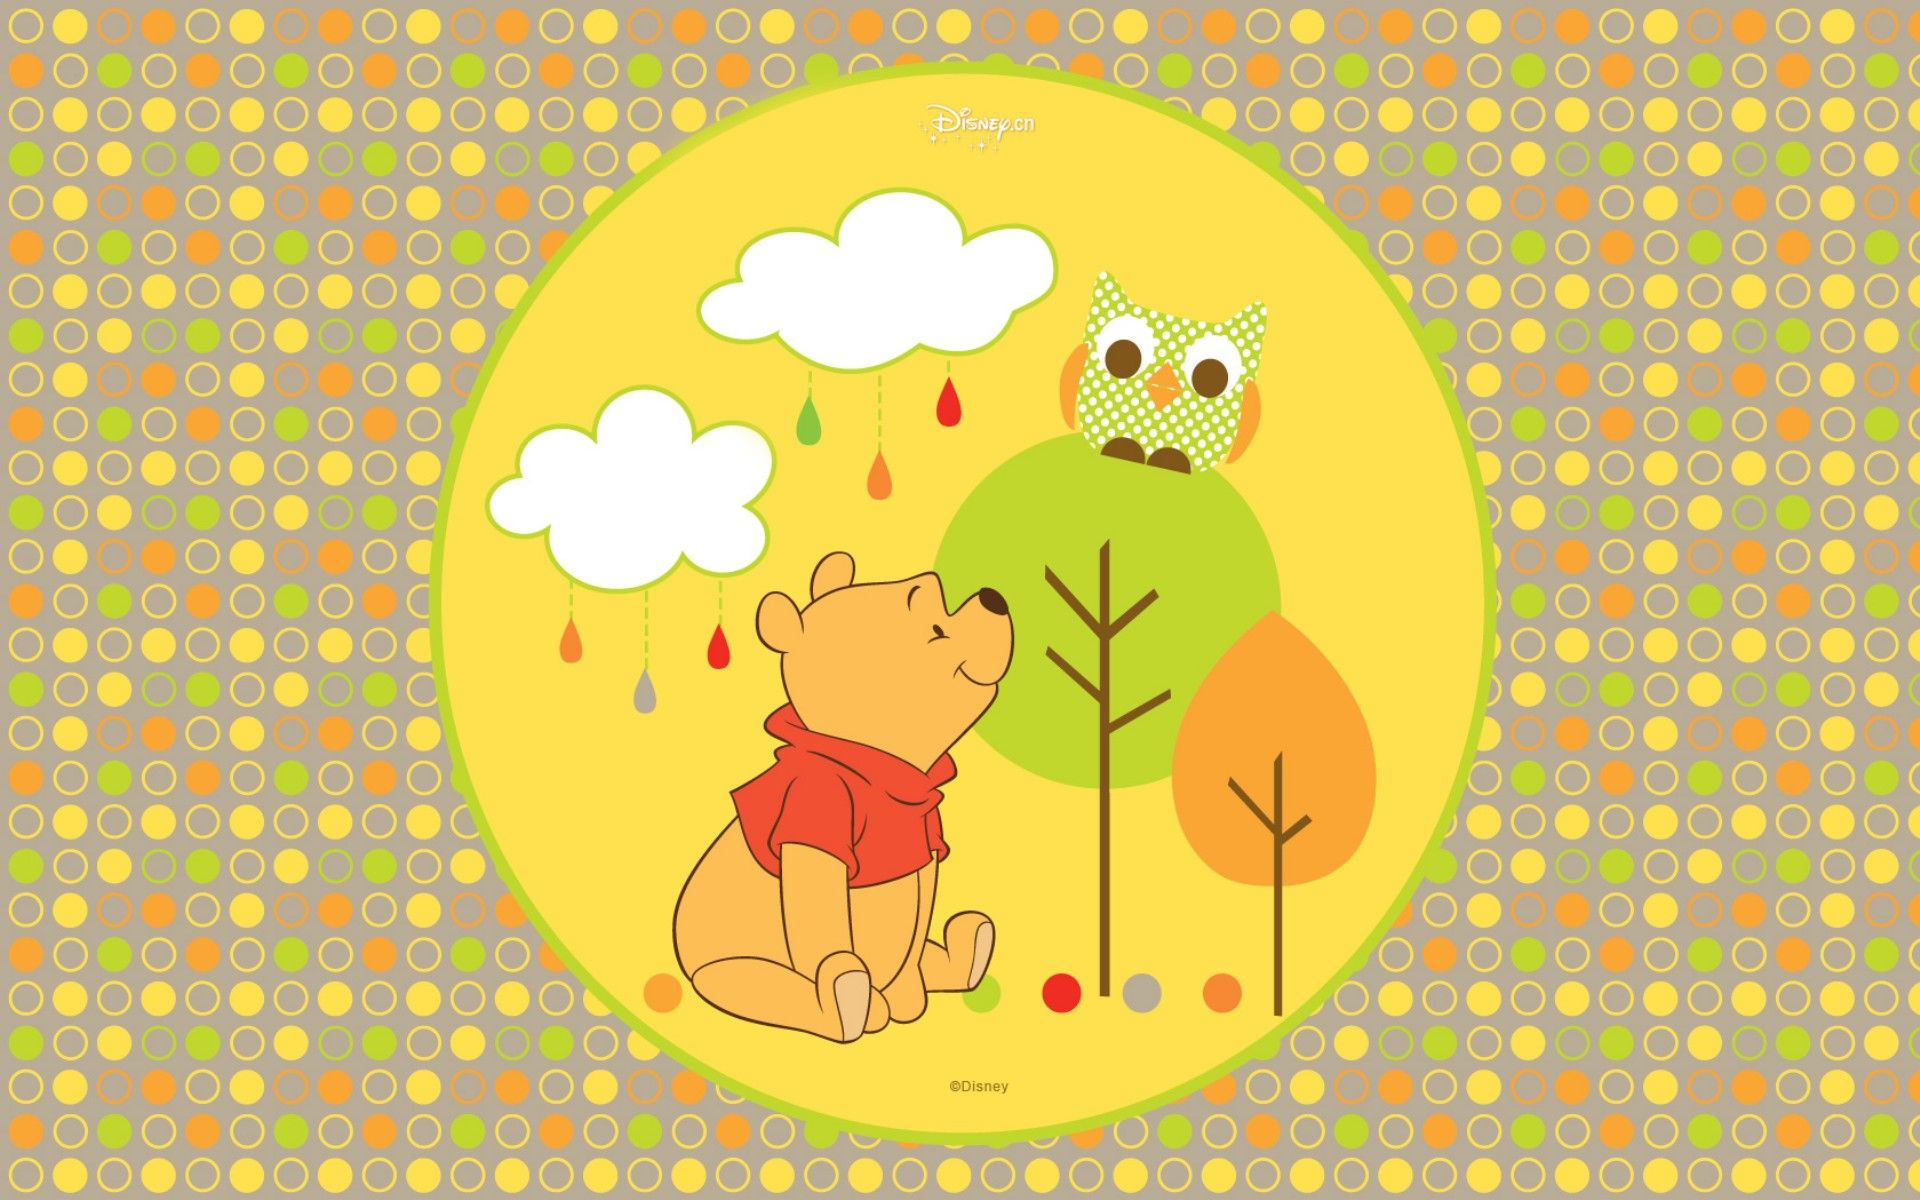 Check out our 83 Winnie The Pooh Wallpapers and Backgrounds and